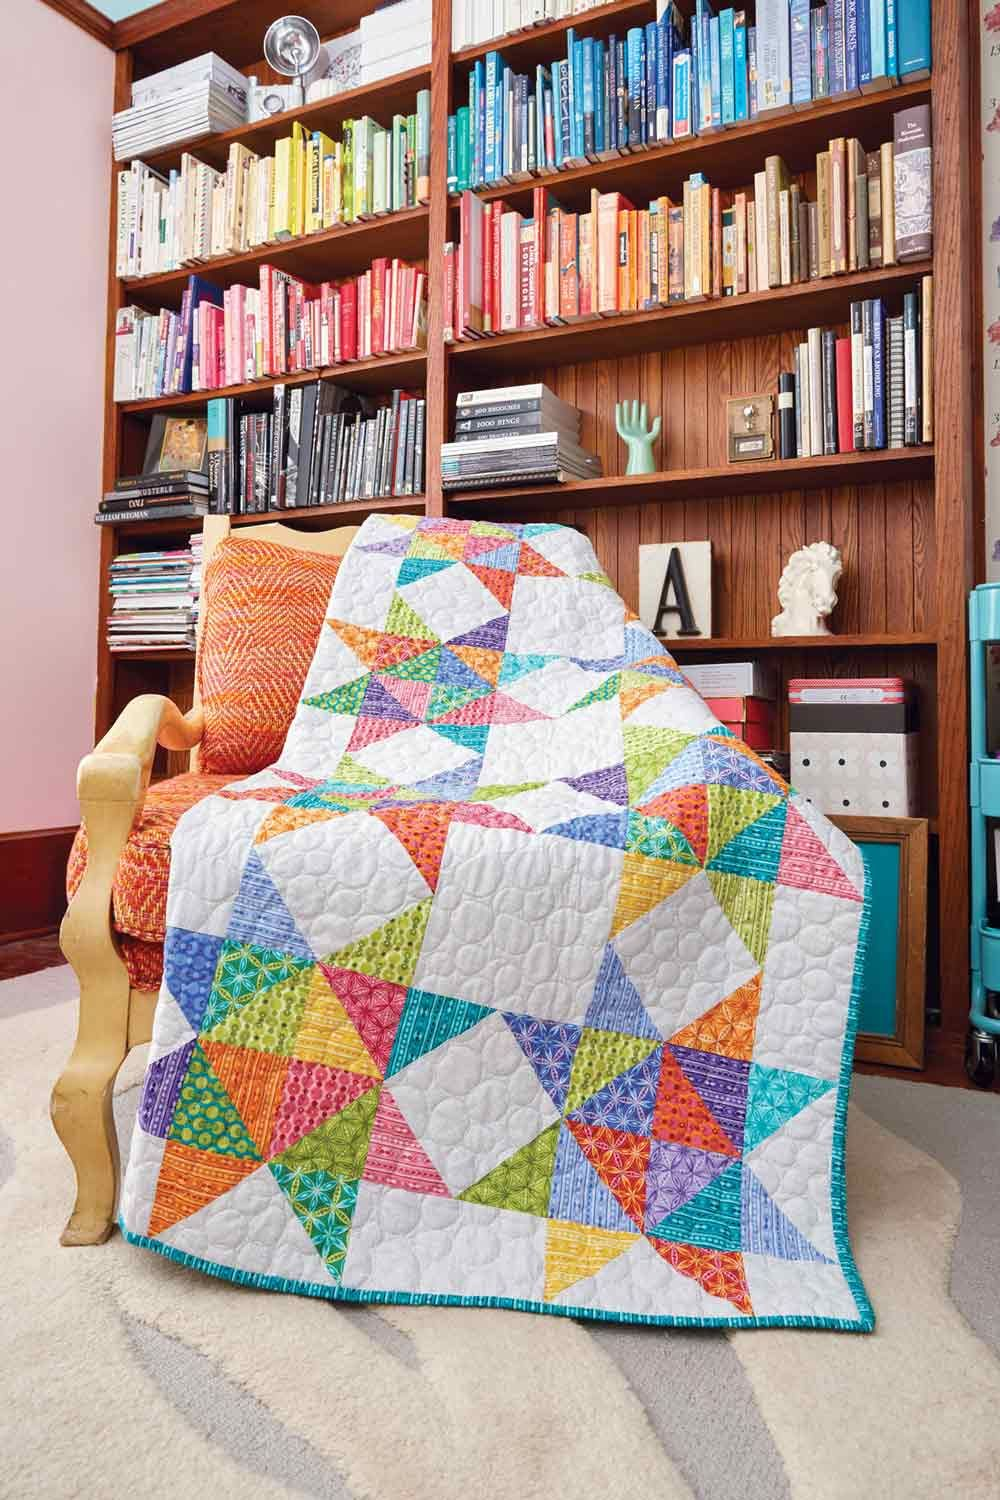 About Fons & Porter, a Division of Charm pack quilts